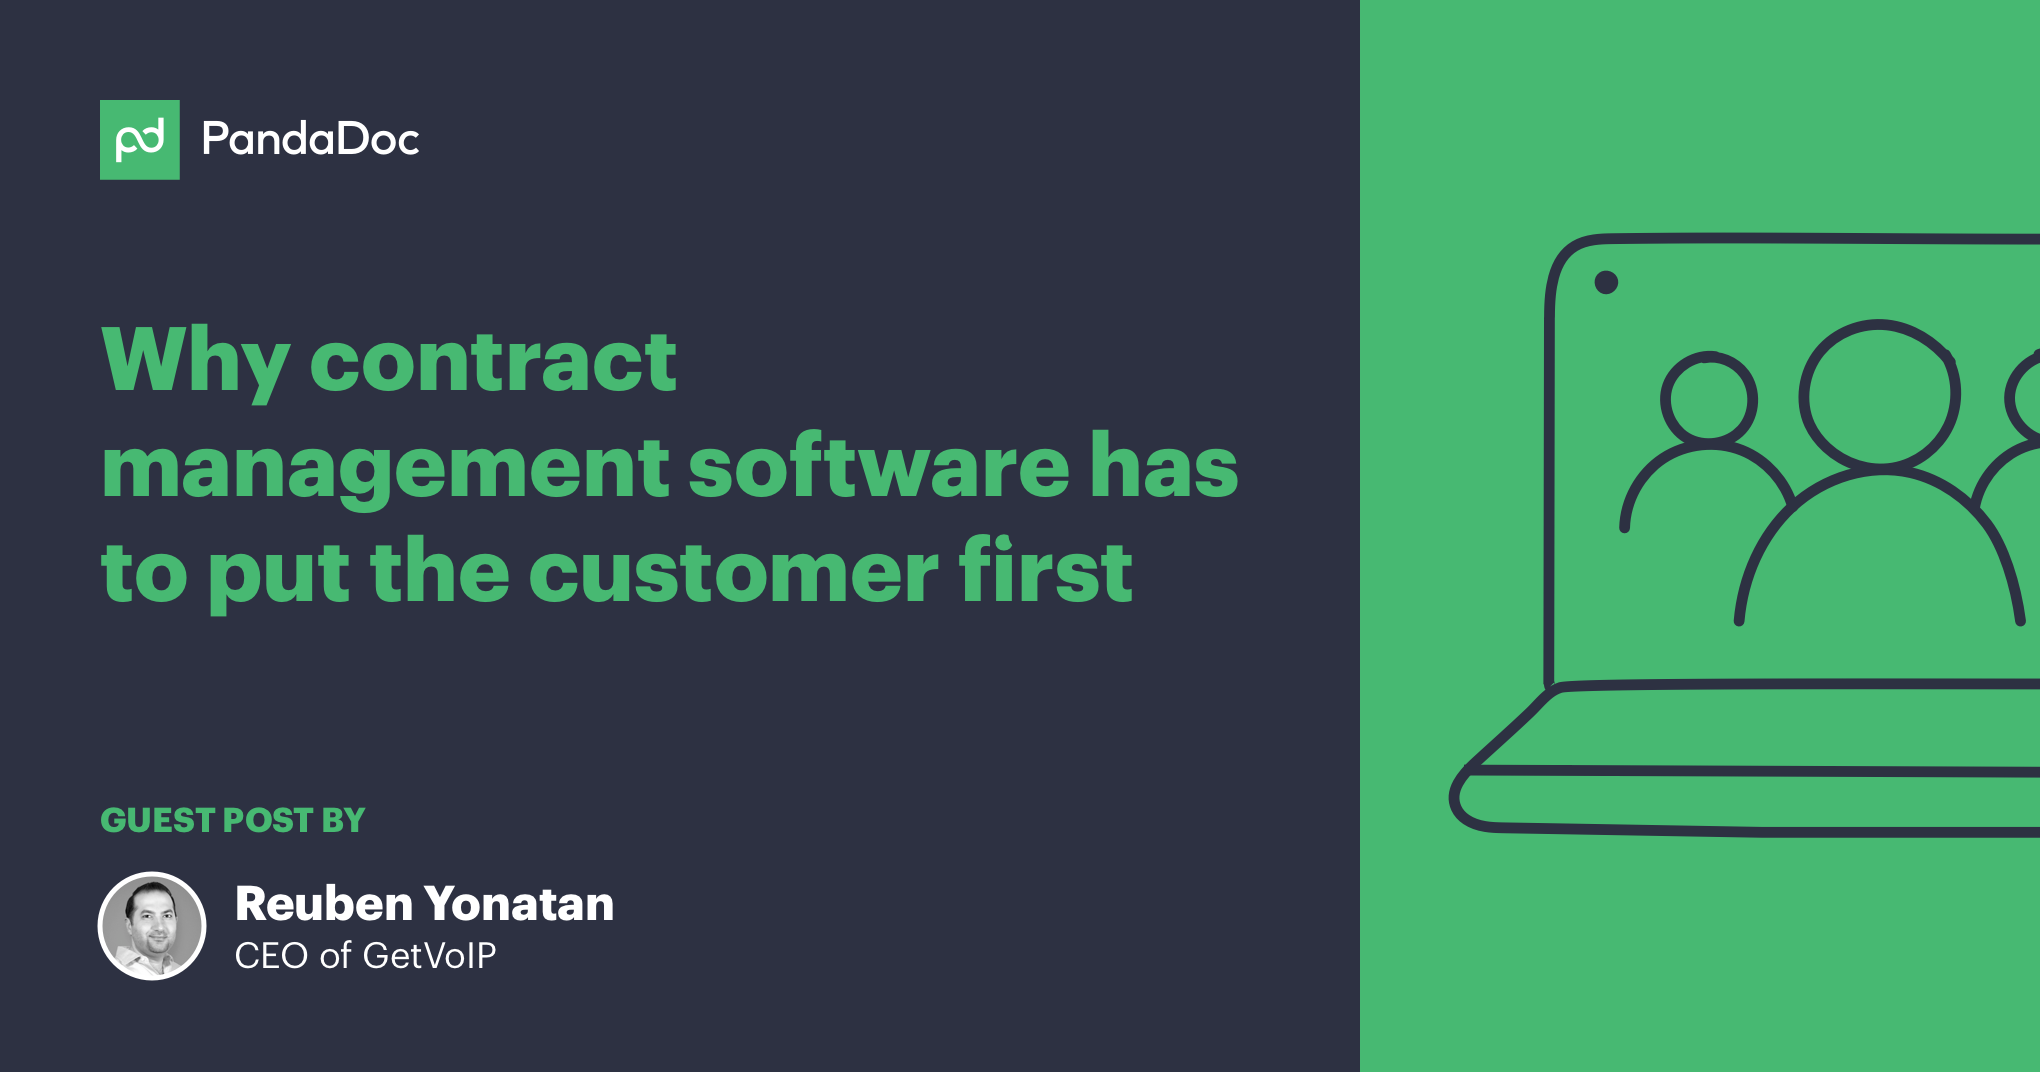 Why contract management software has to put the customer first